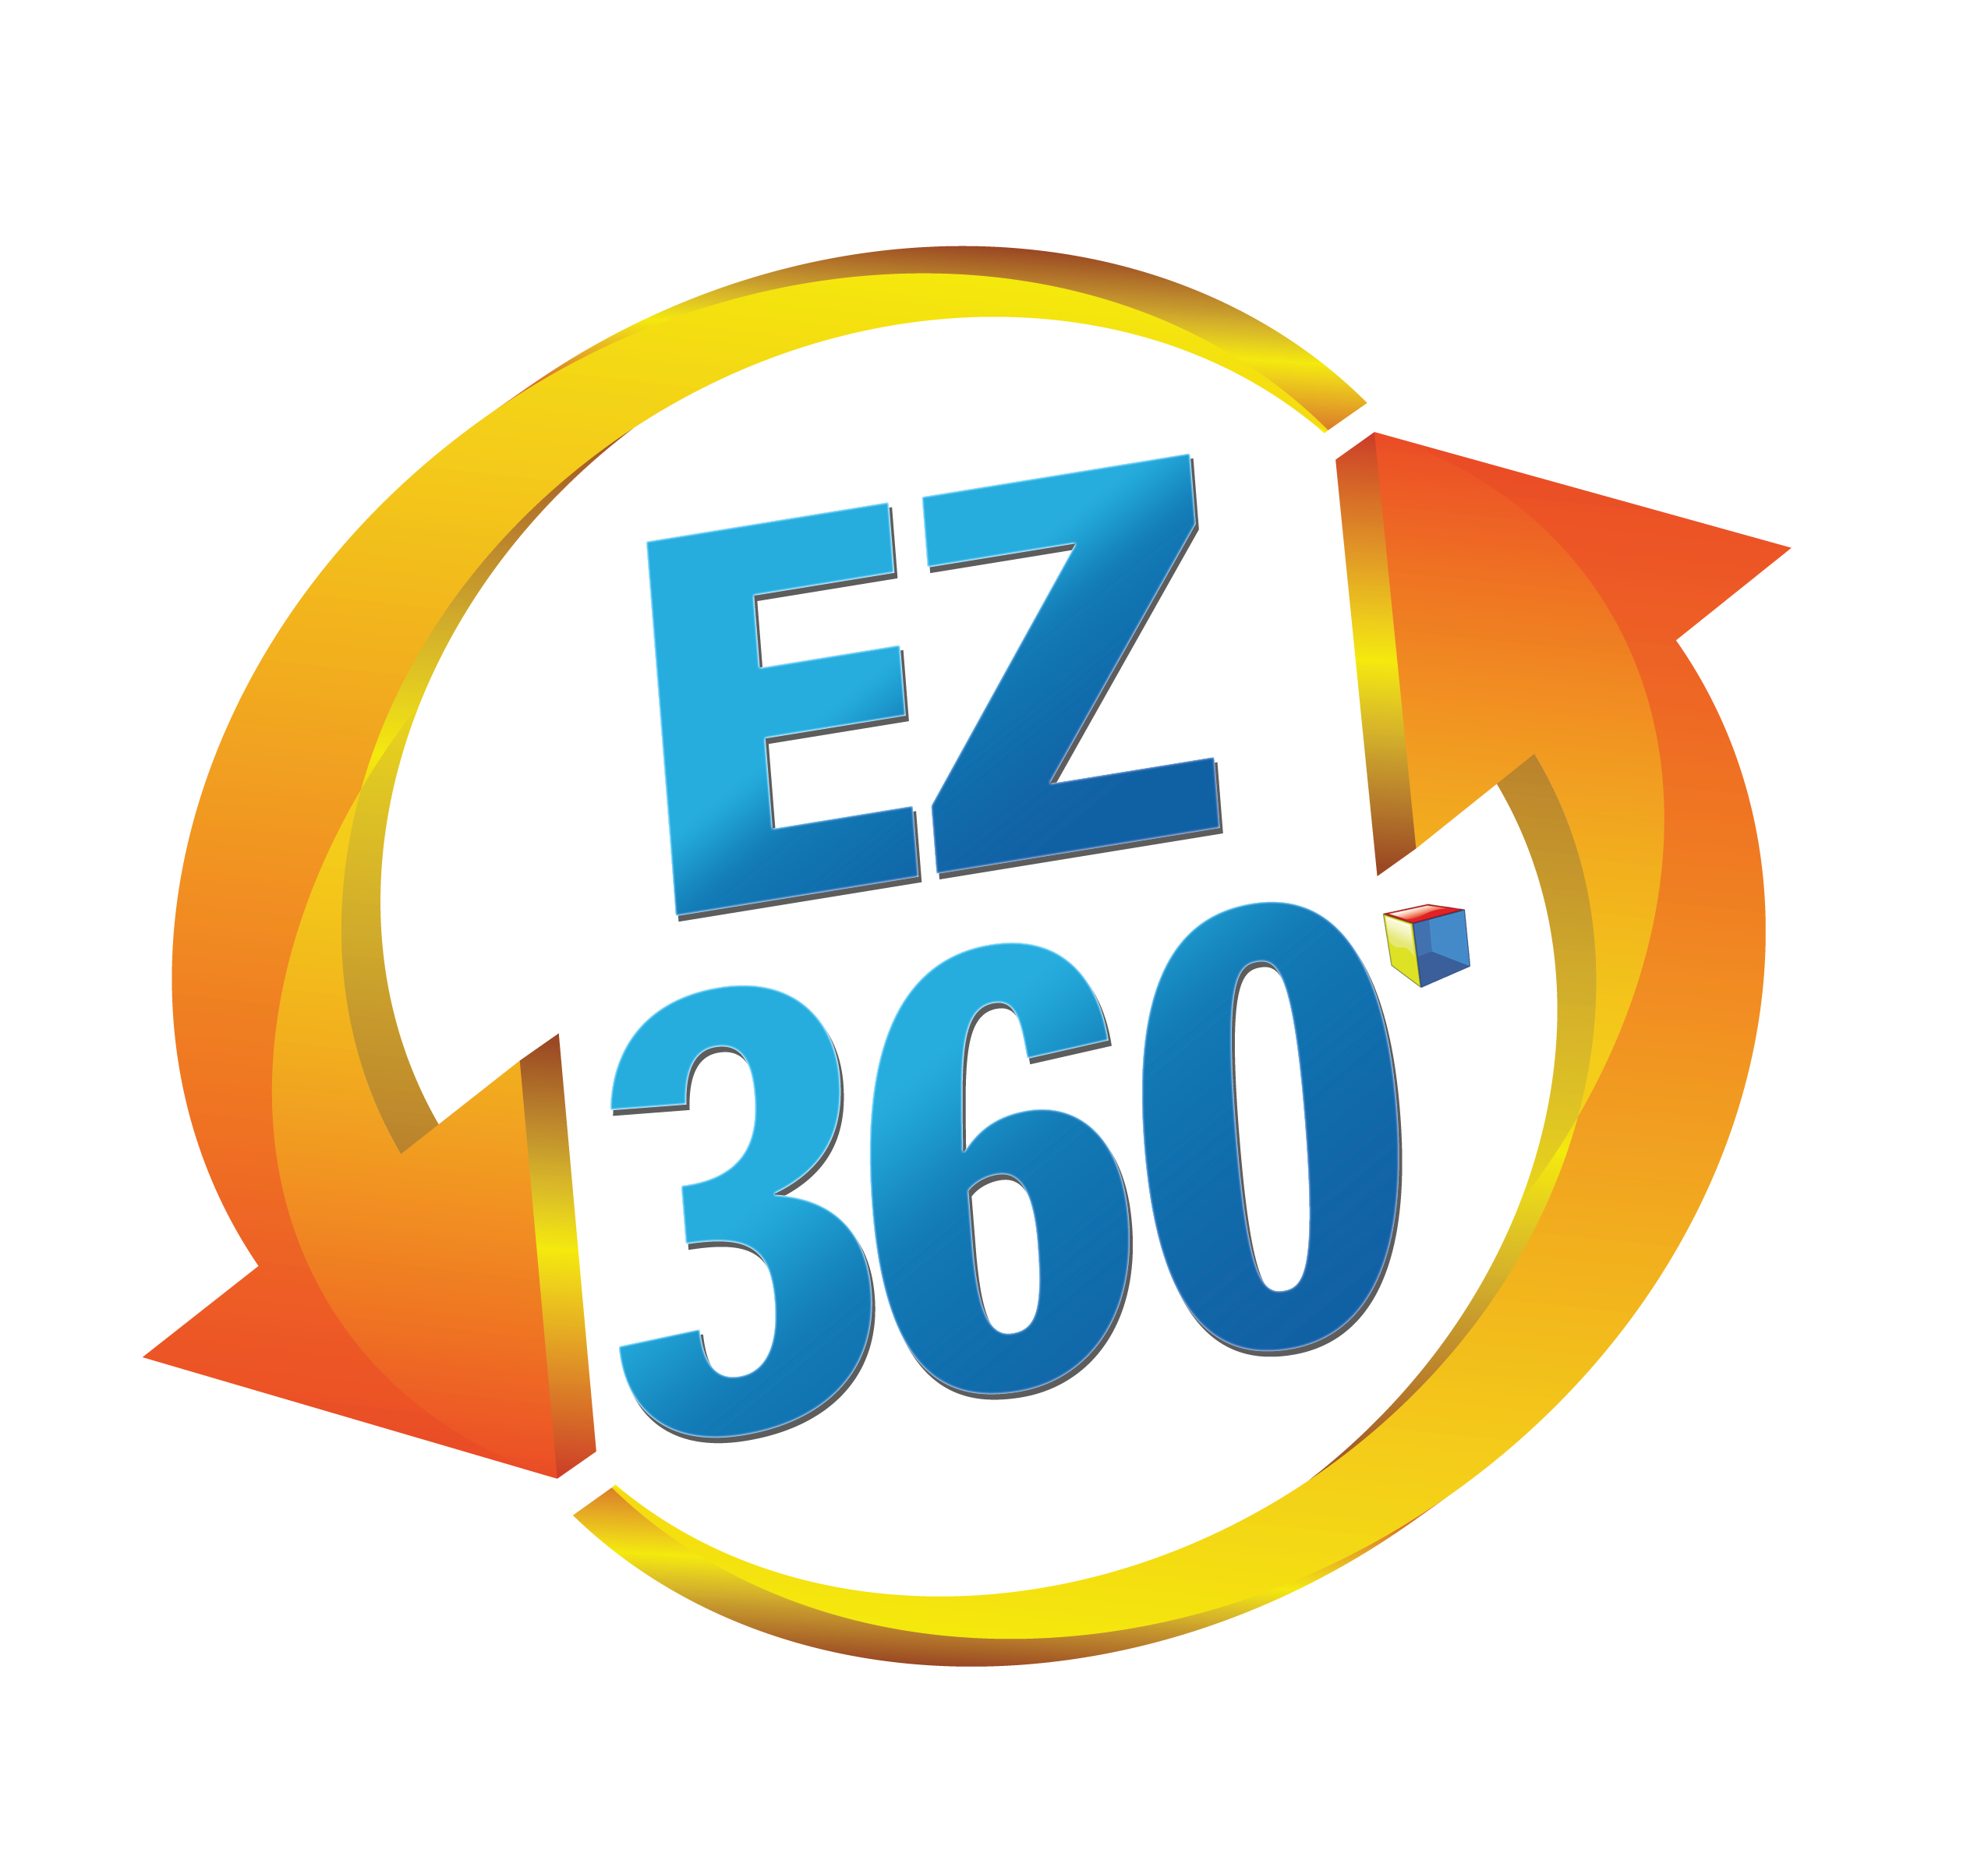 EZ360 Help Center home page